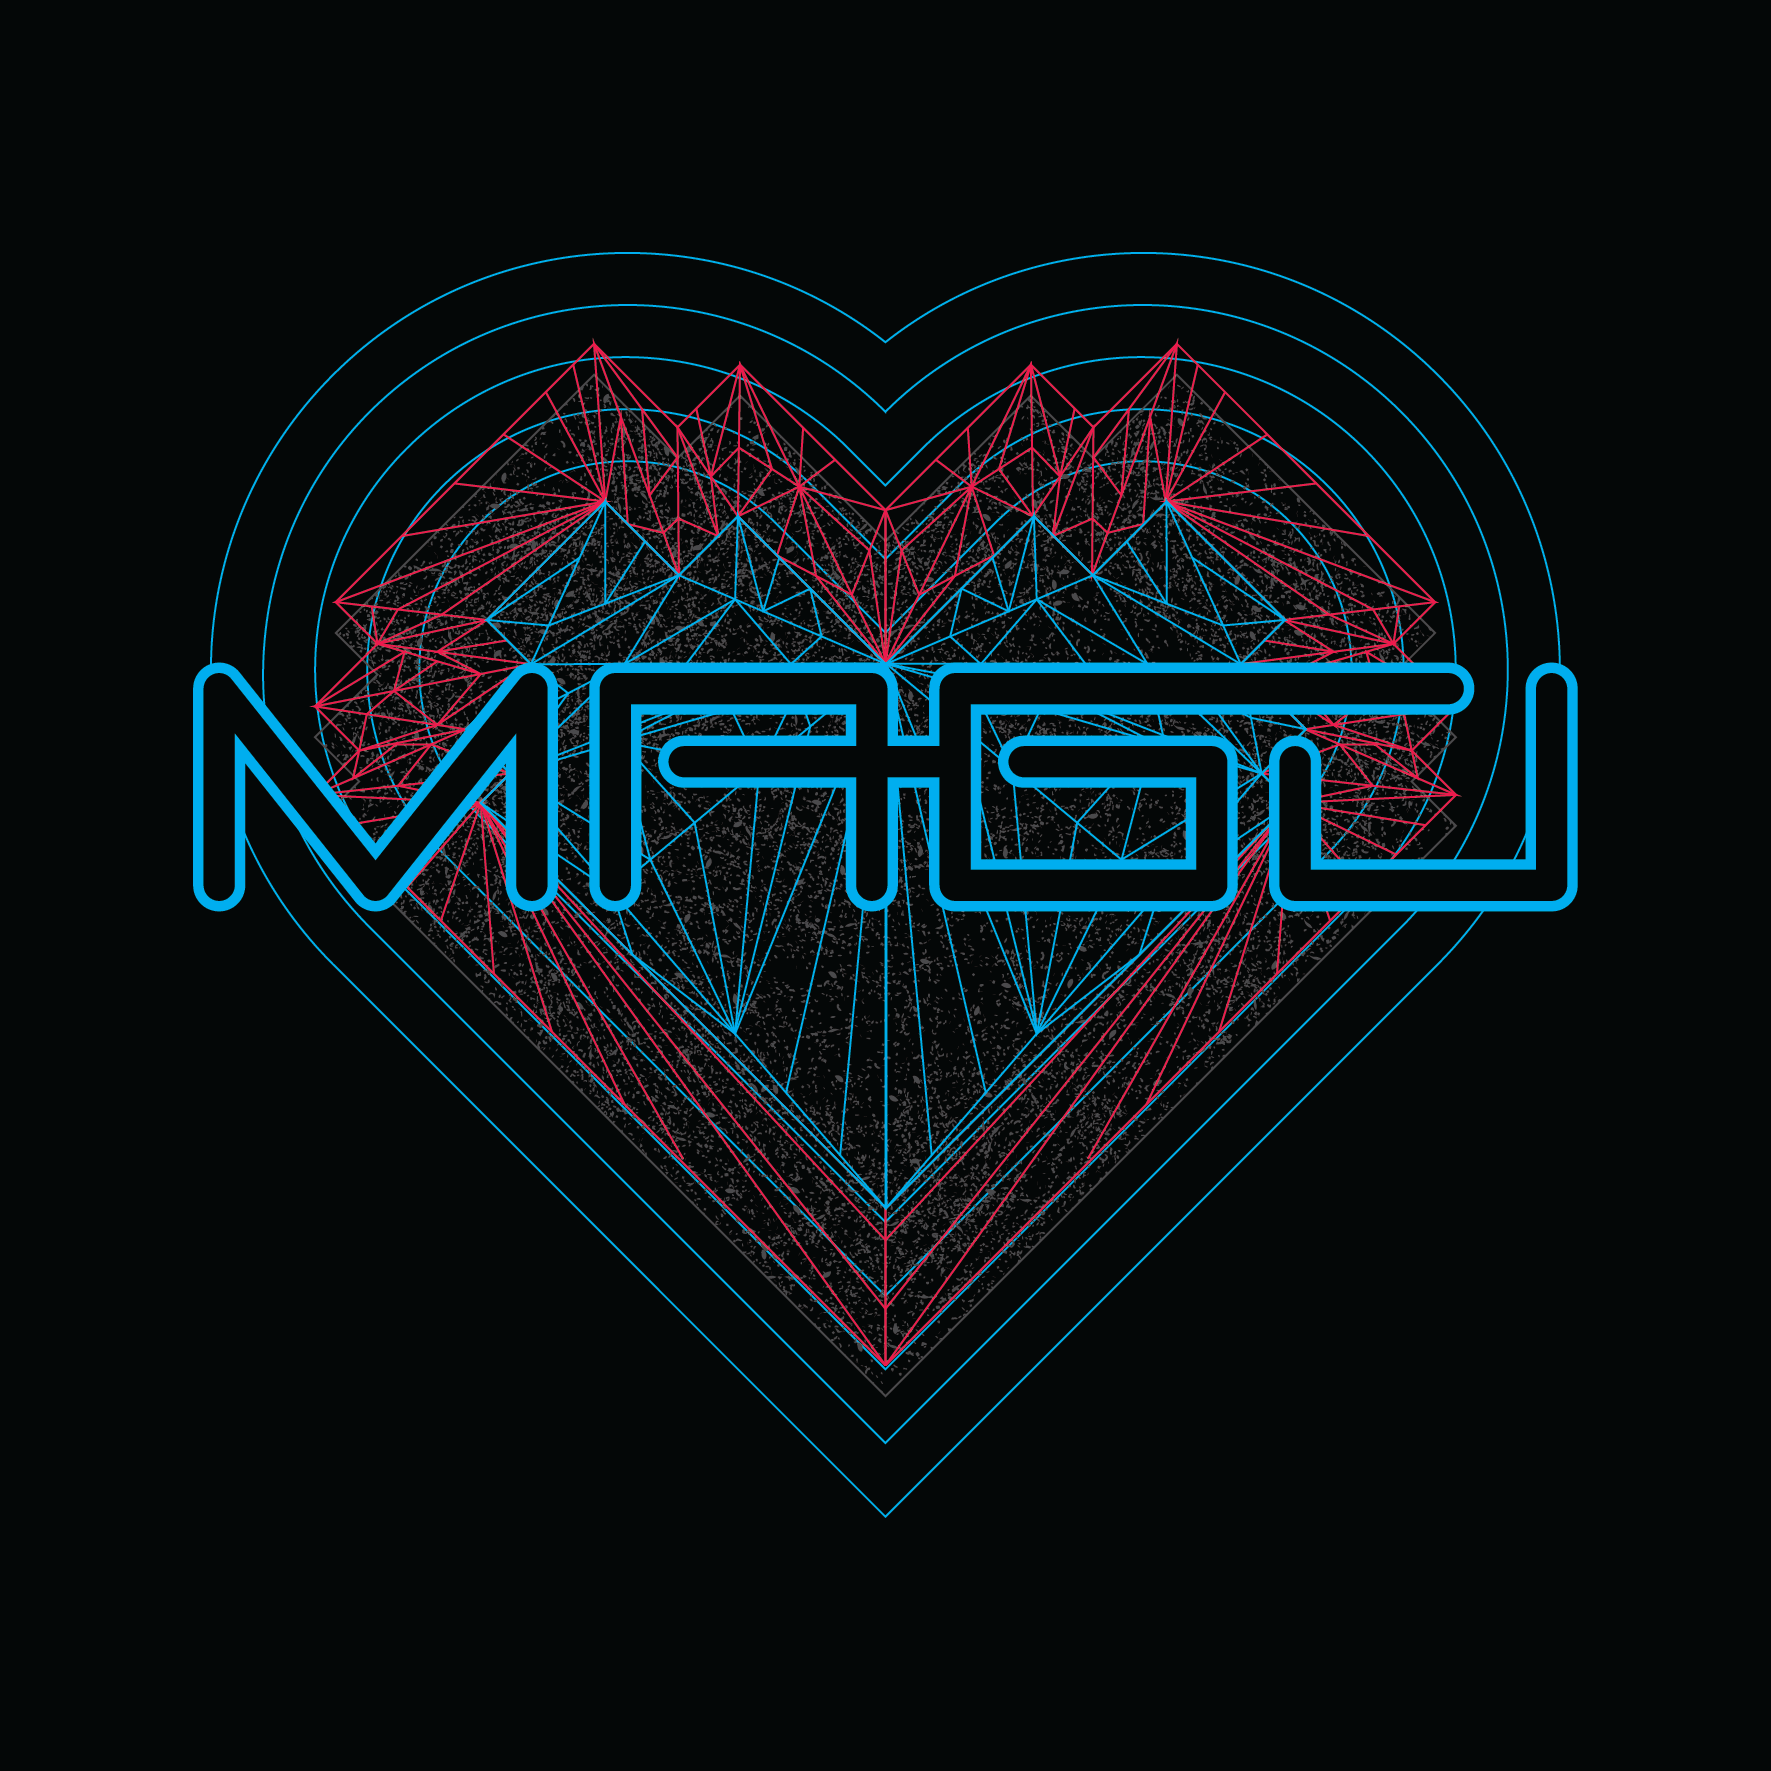 Magu - Revamp of their old logo with a requested heart background.